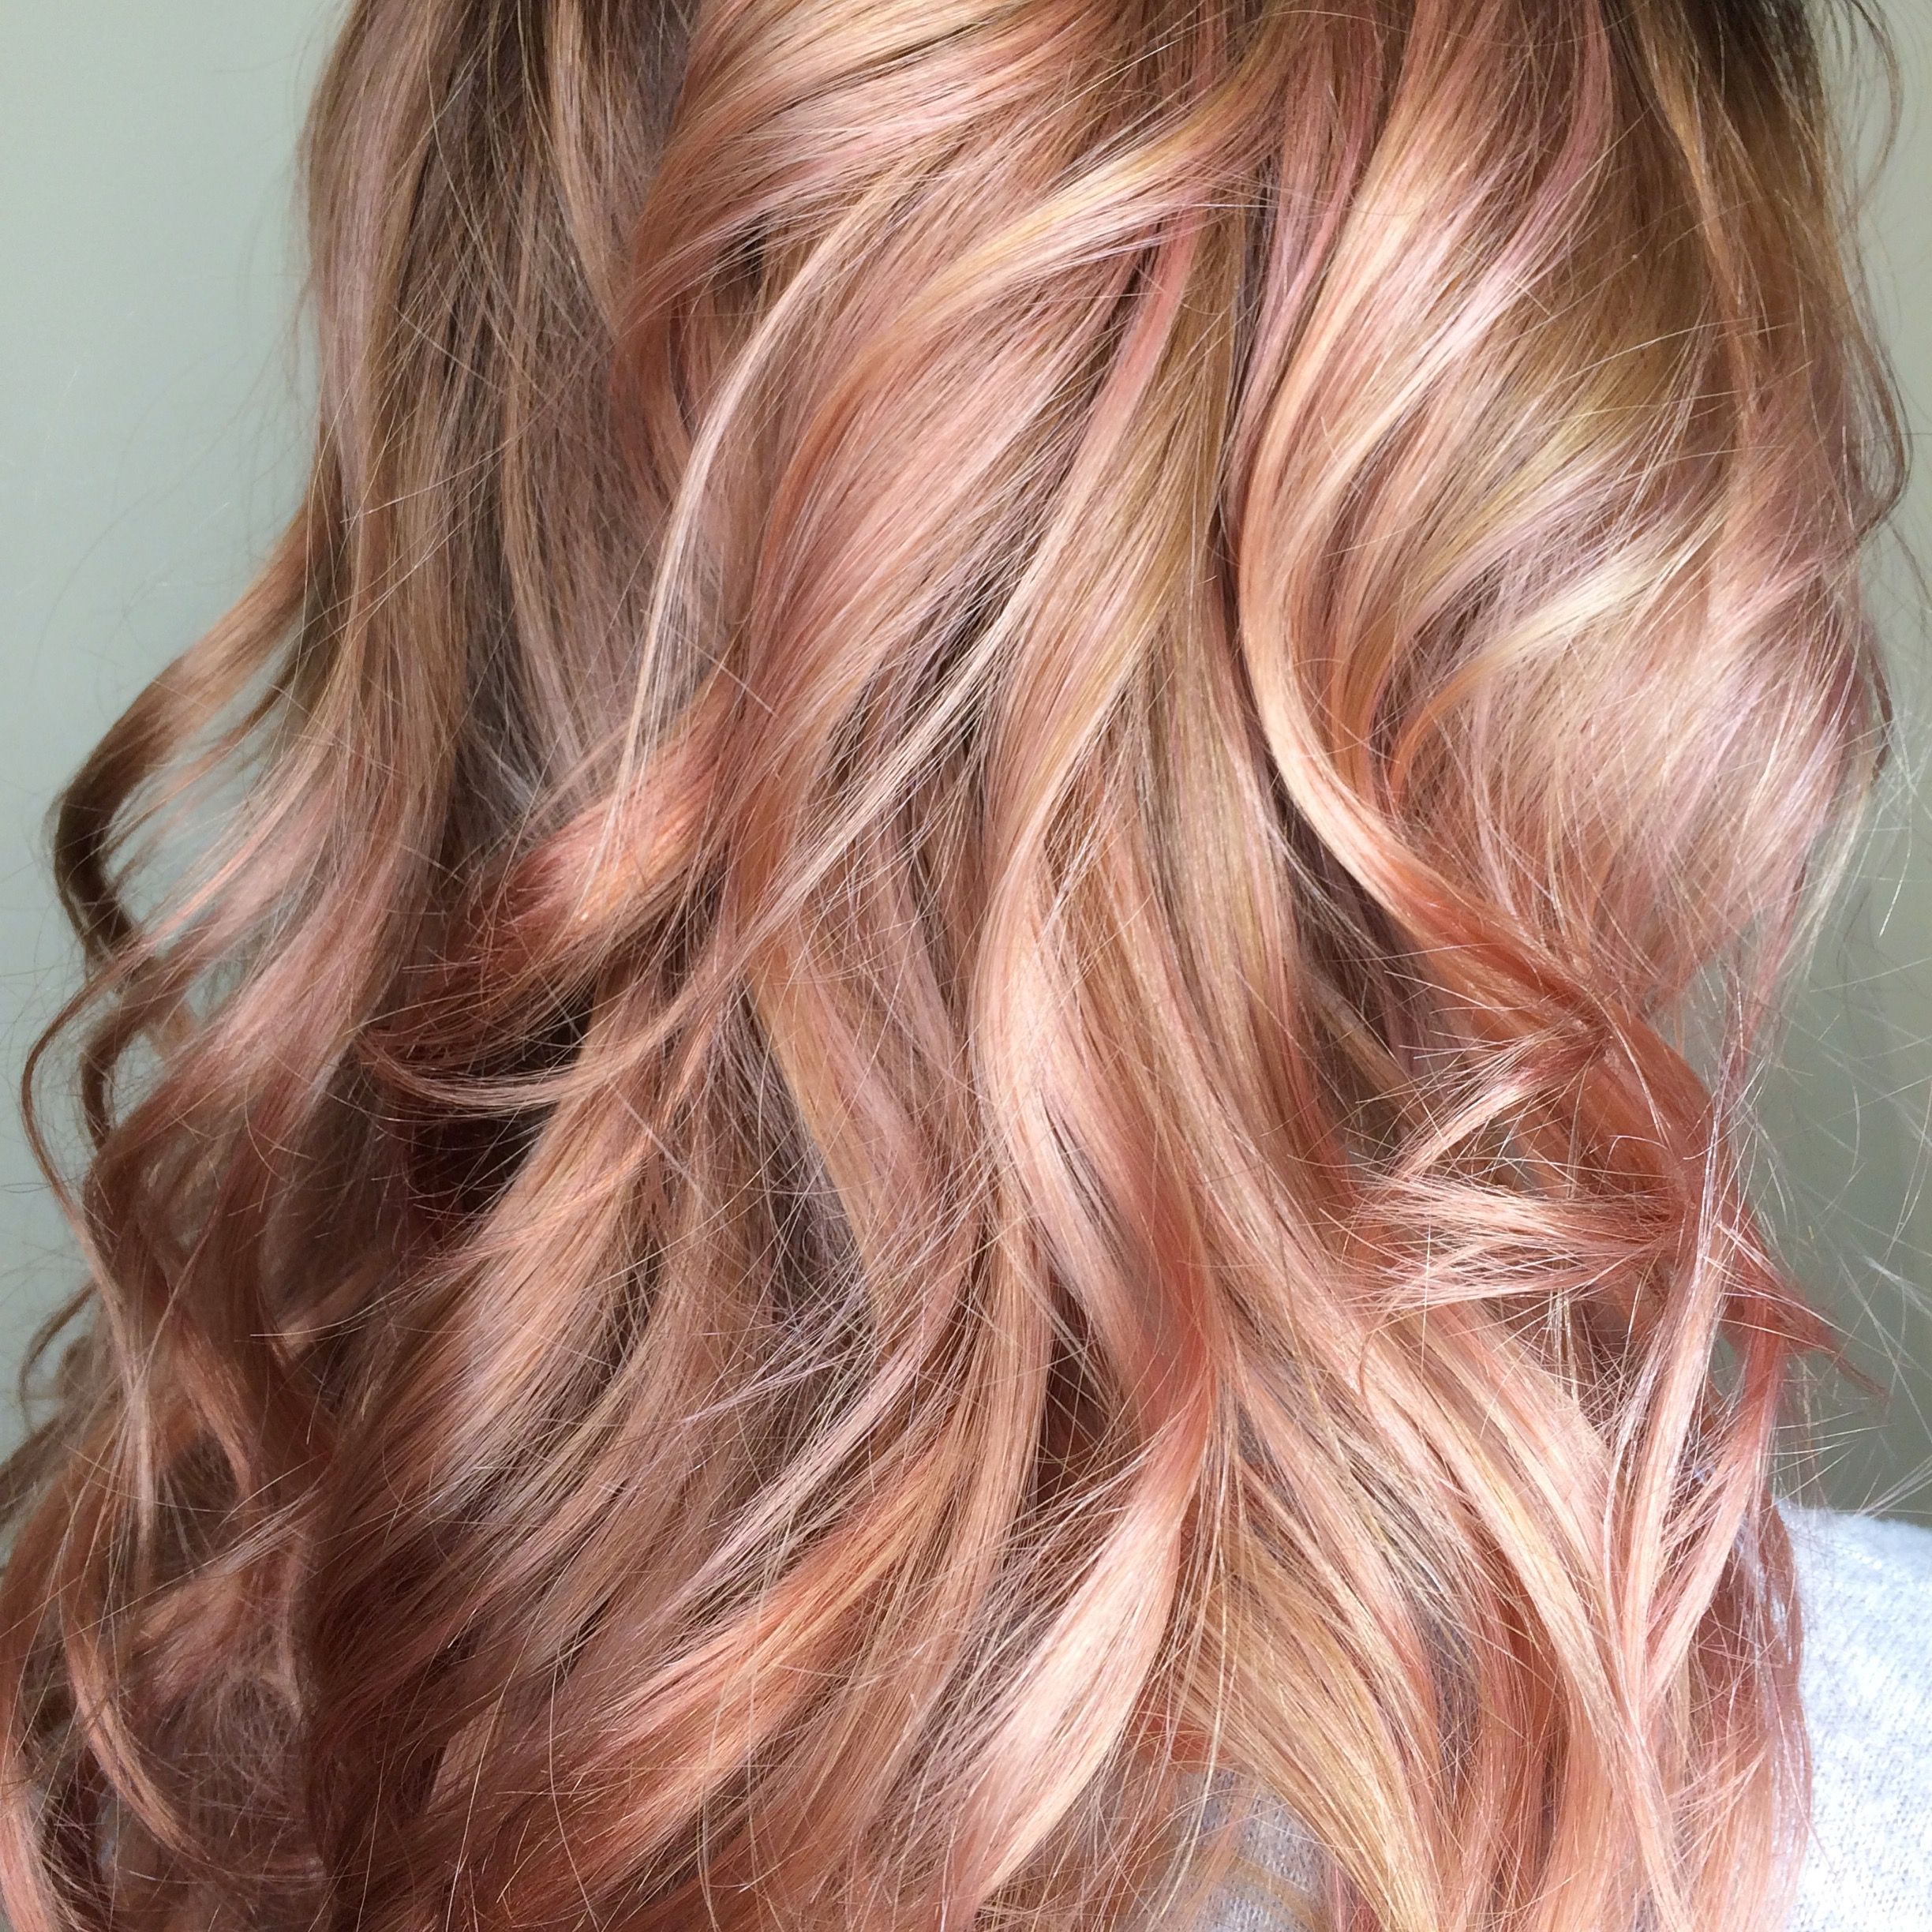 Beautiful Rose Gold / Balayage / Blush | Balayage & Beyond